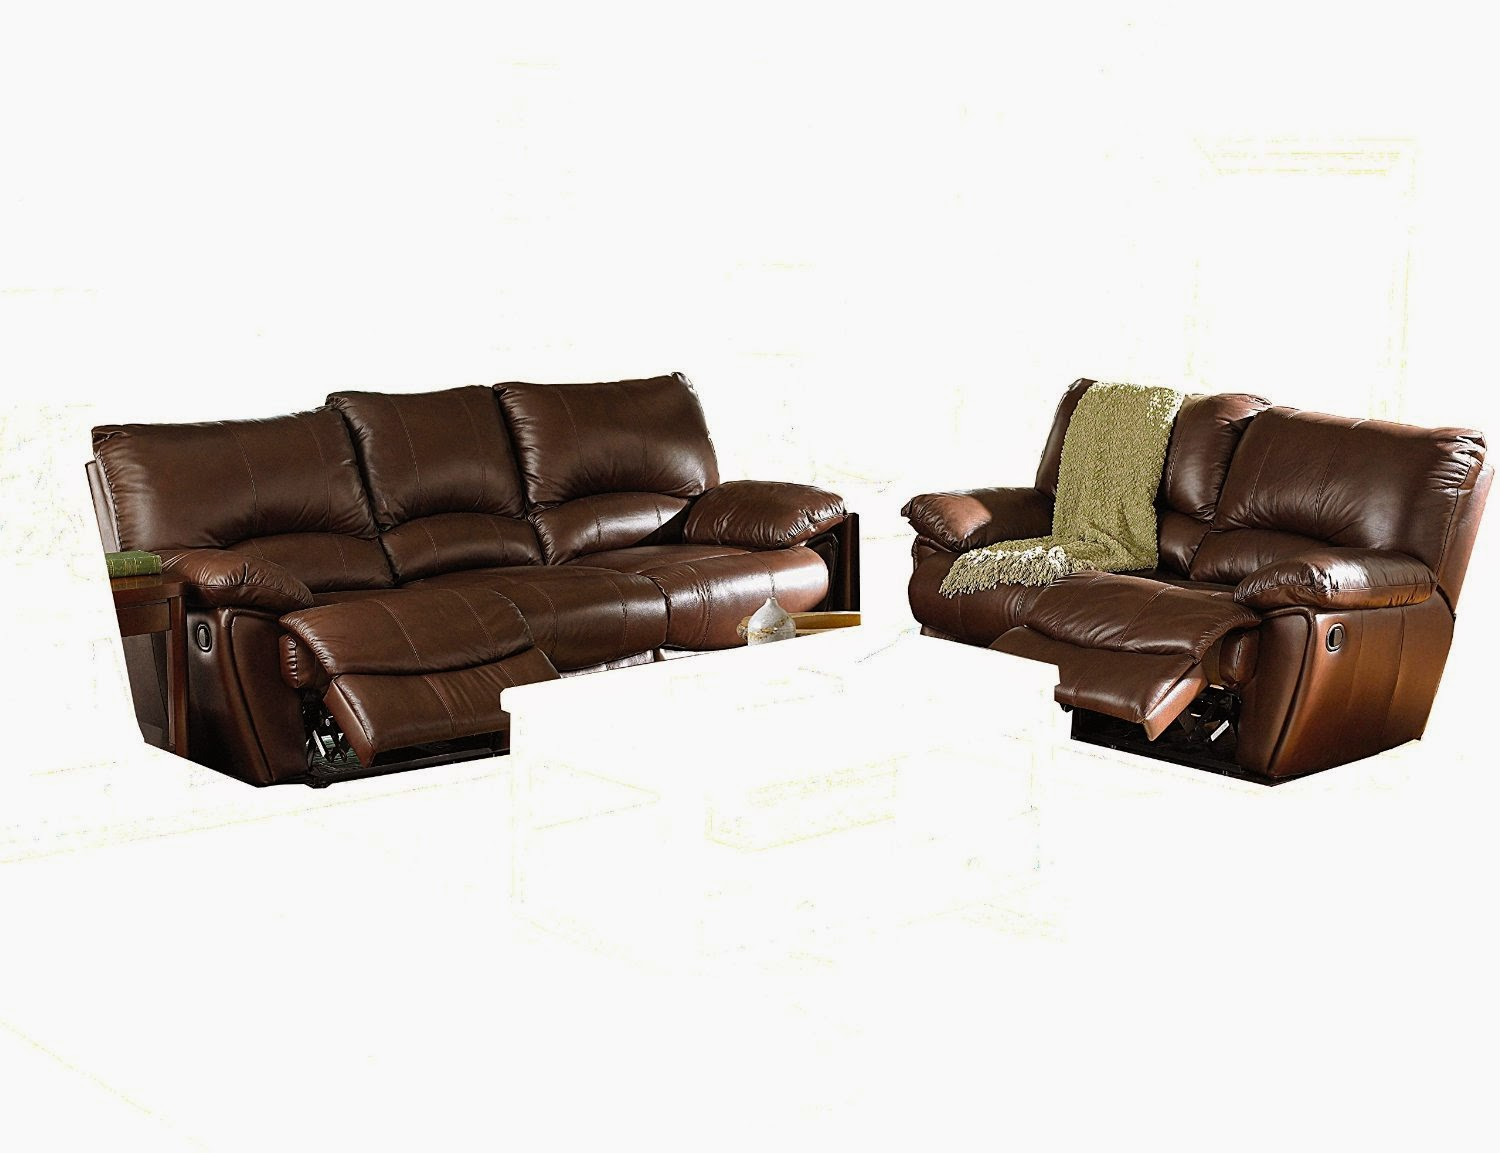 Best Reclining Sofa For The Money: Whitaker Brown Reclining ...